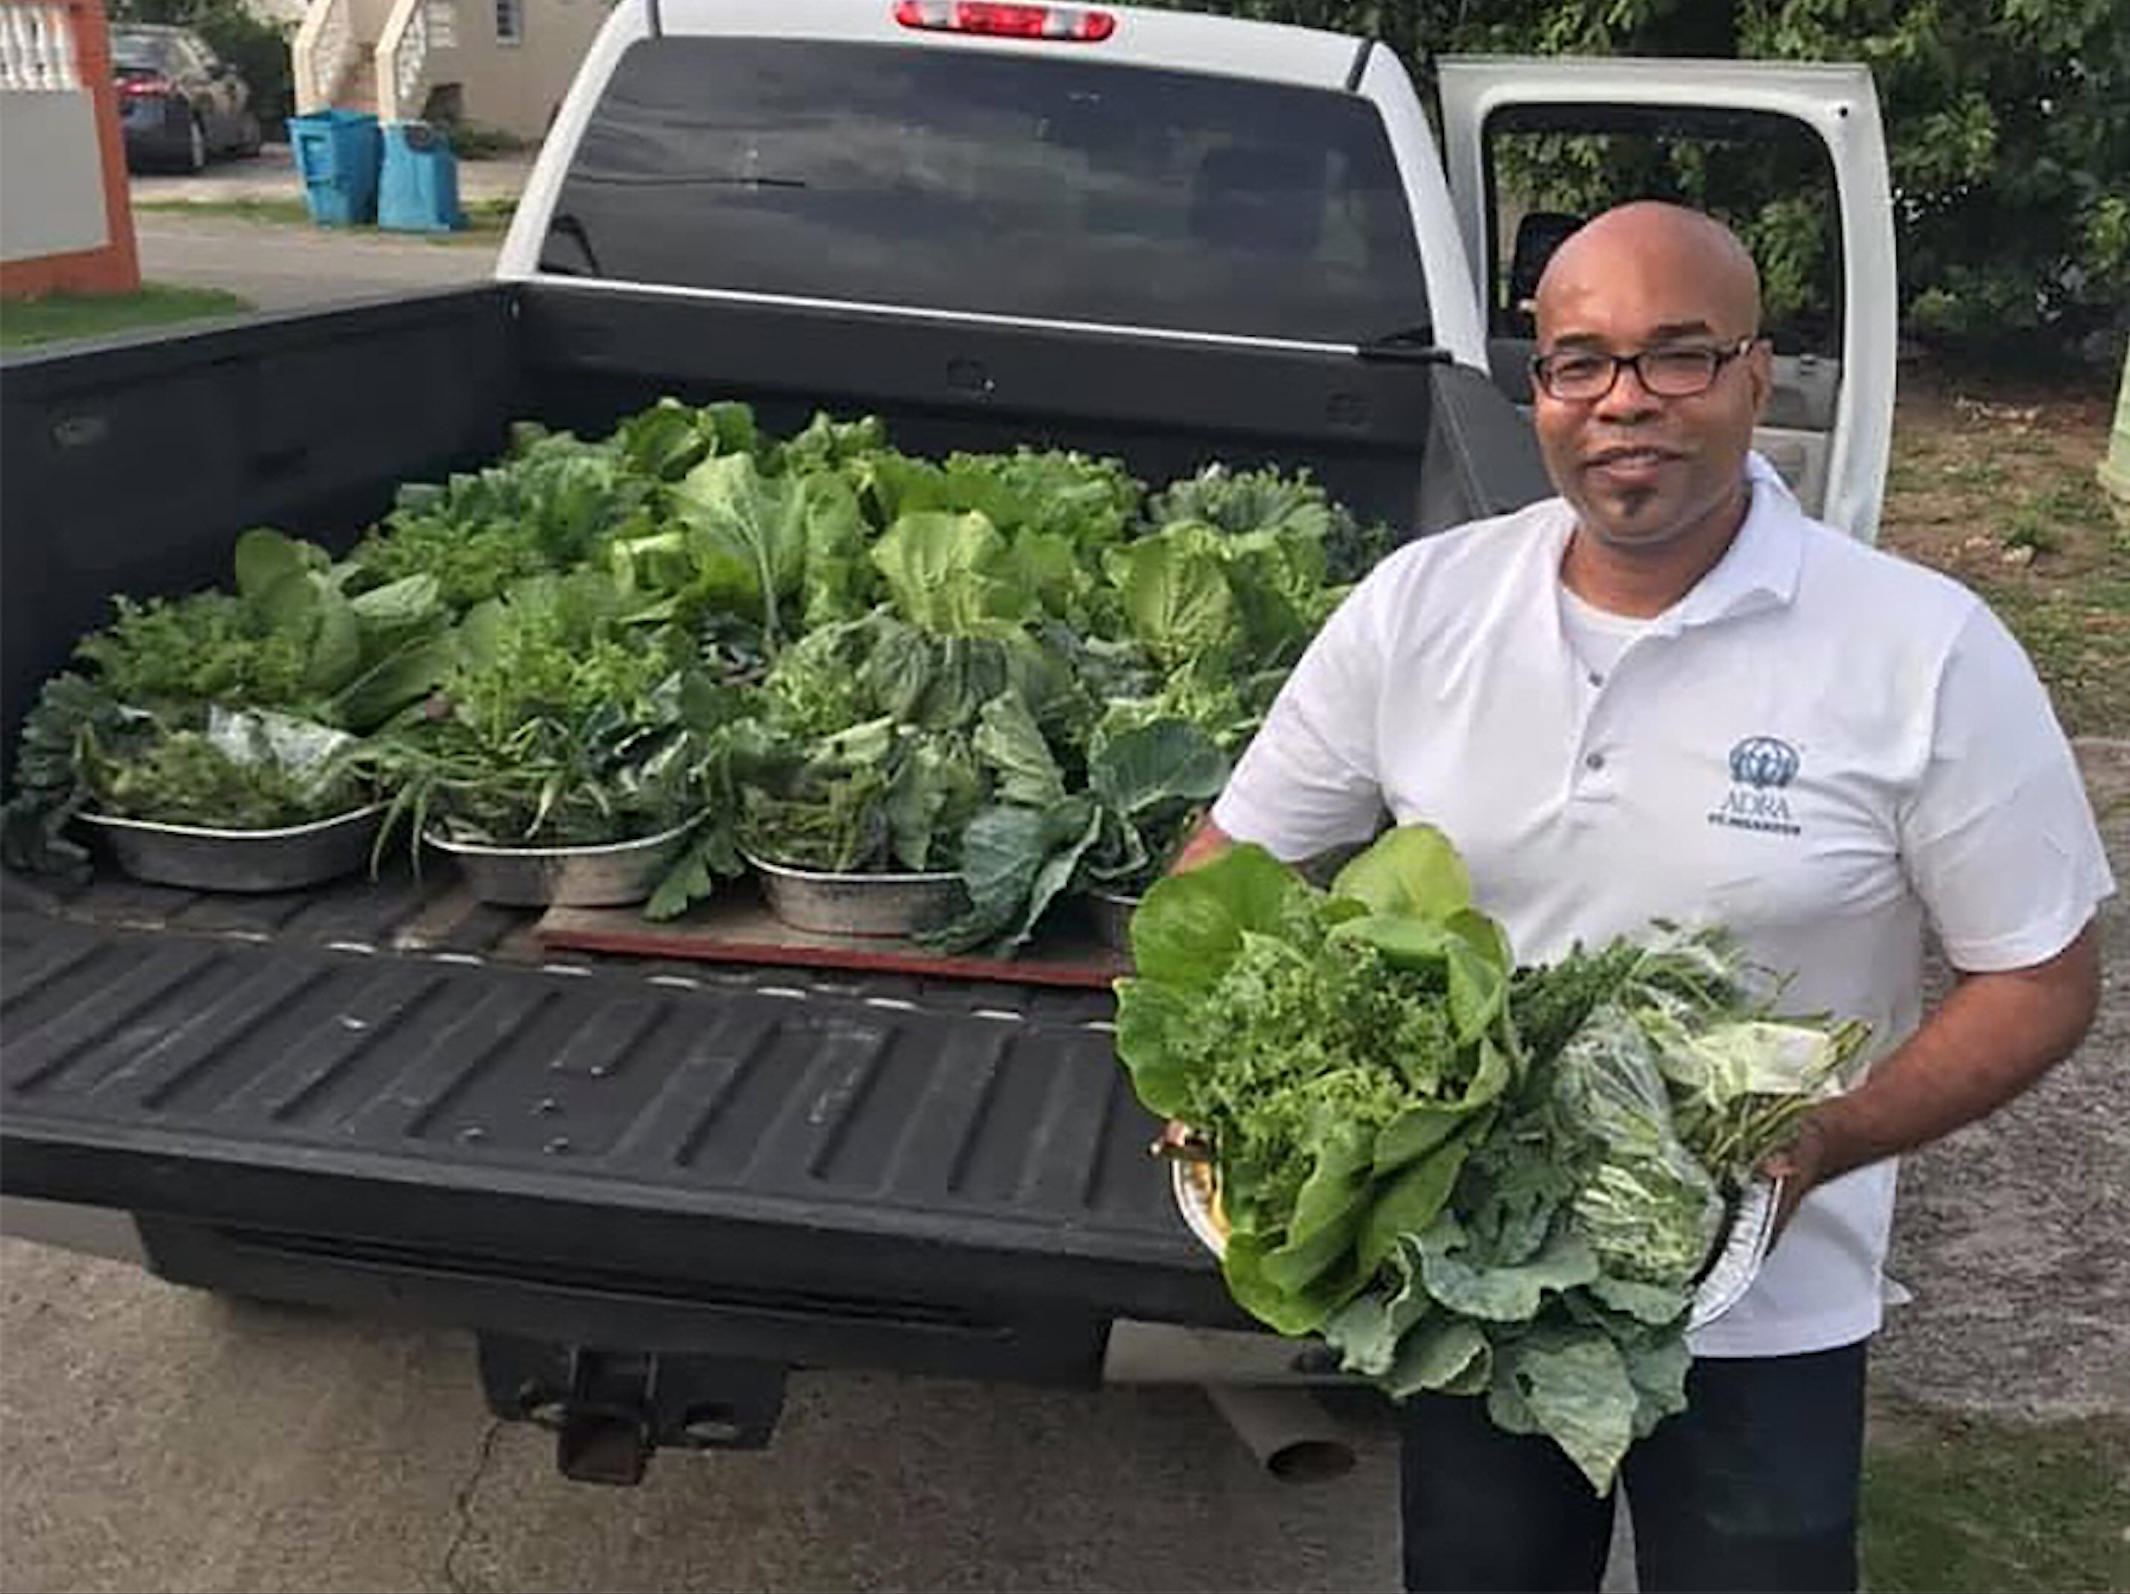 In Sint Maarten, ADRA Distributes Organically Grown Produce and Launches Kitchen Gardens